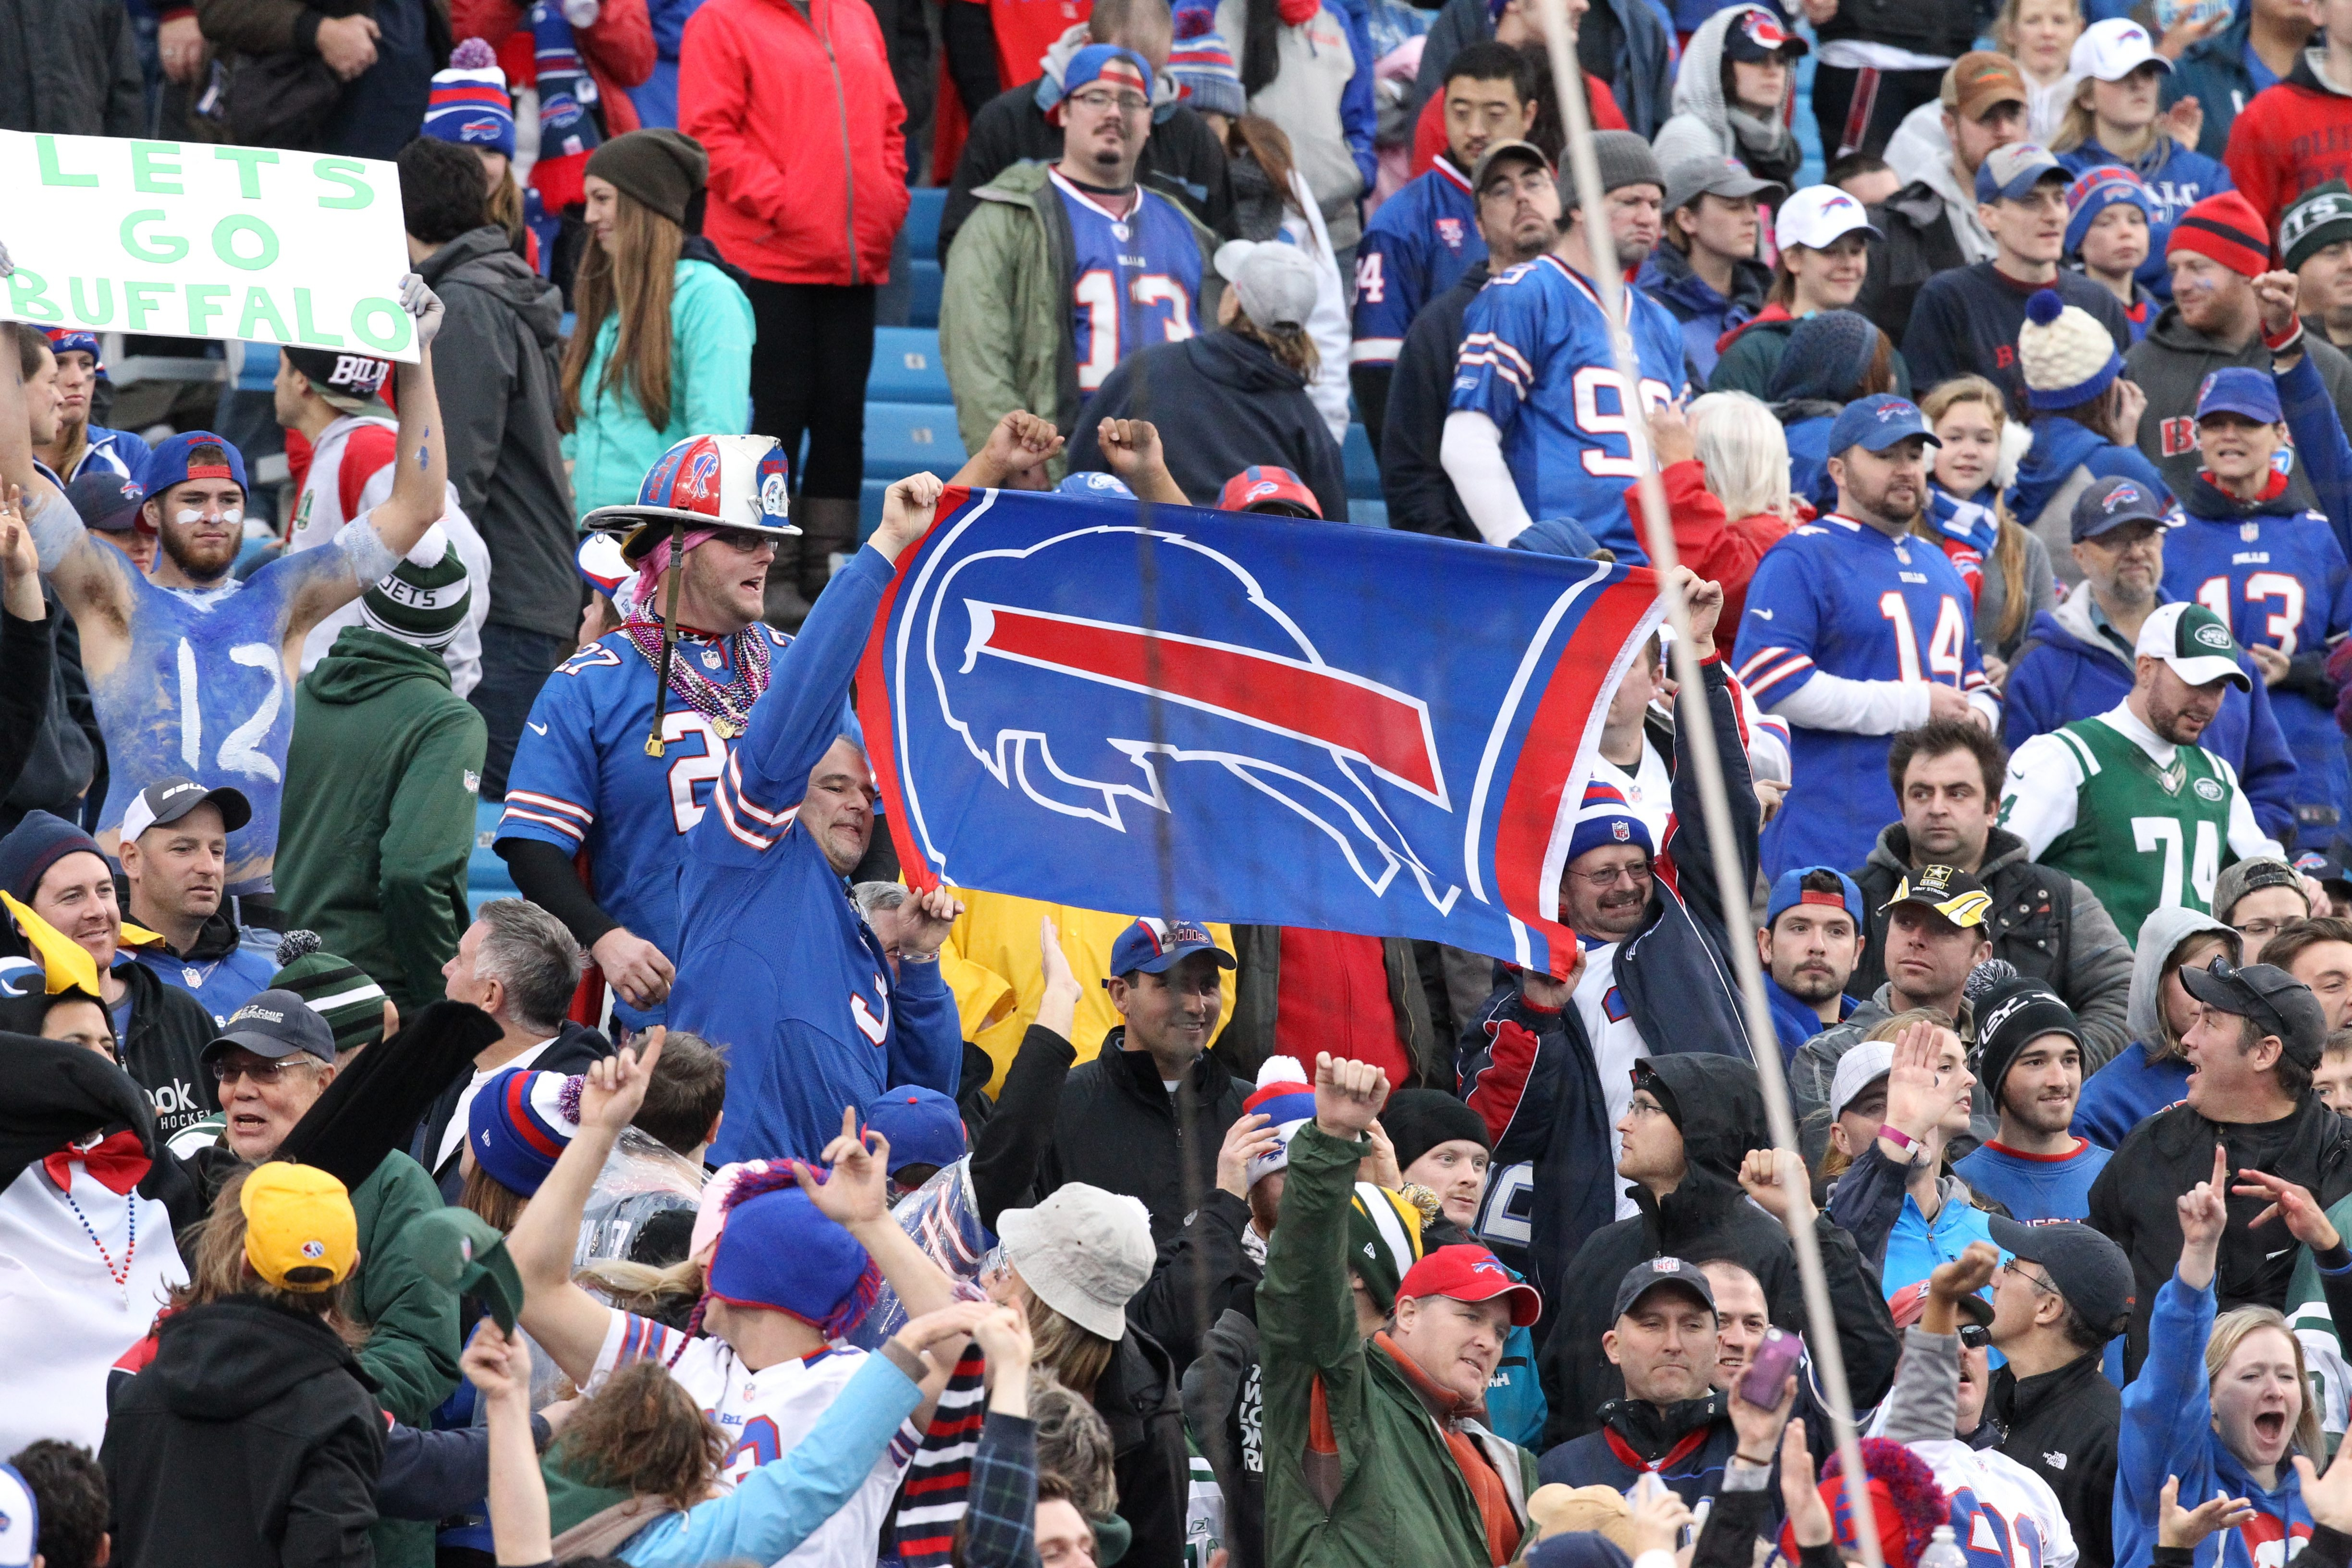 For years, many Bills fans have felt the specter of relocation hanging heavily over the team.